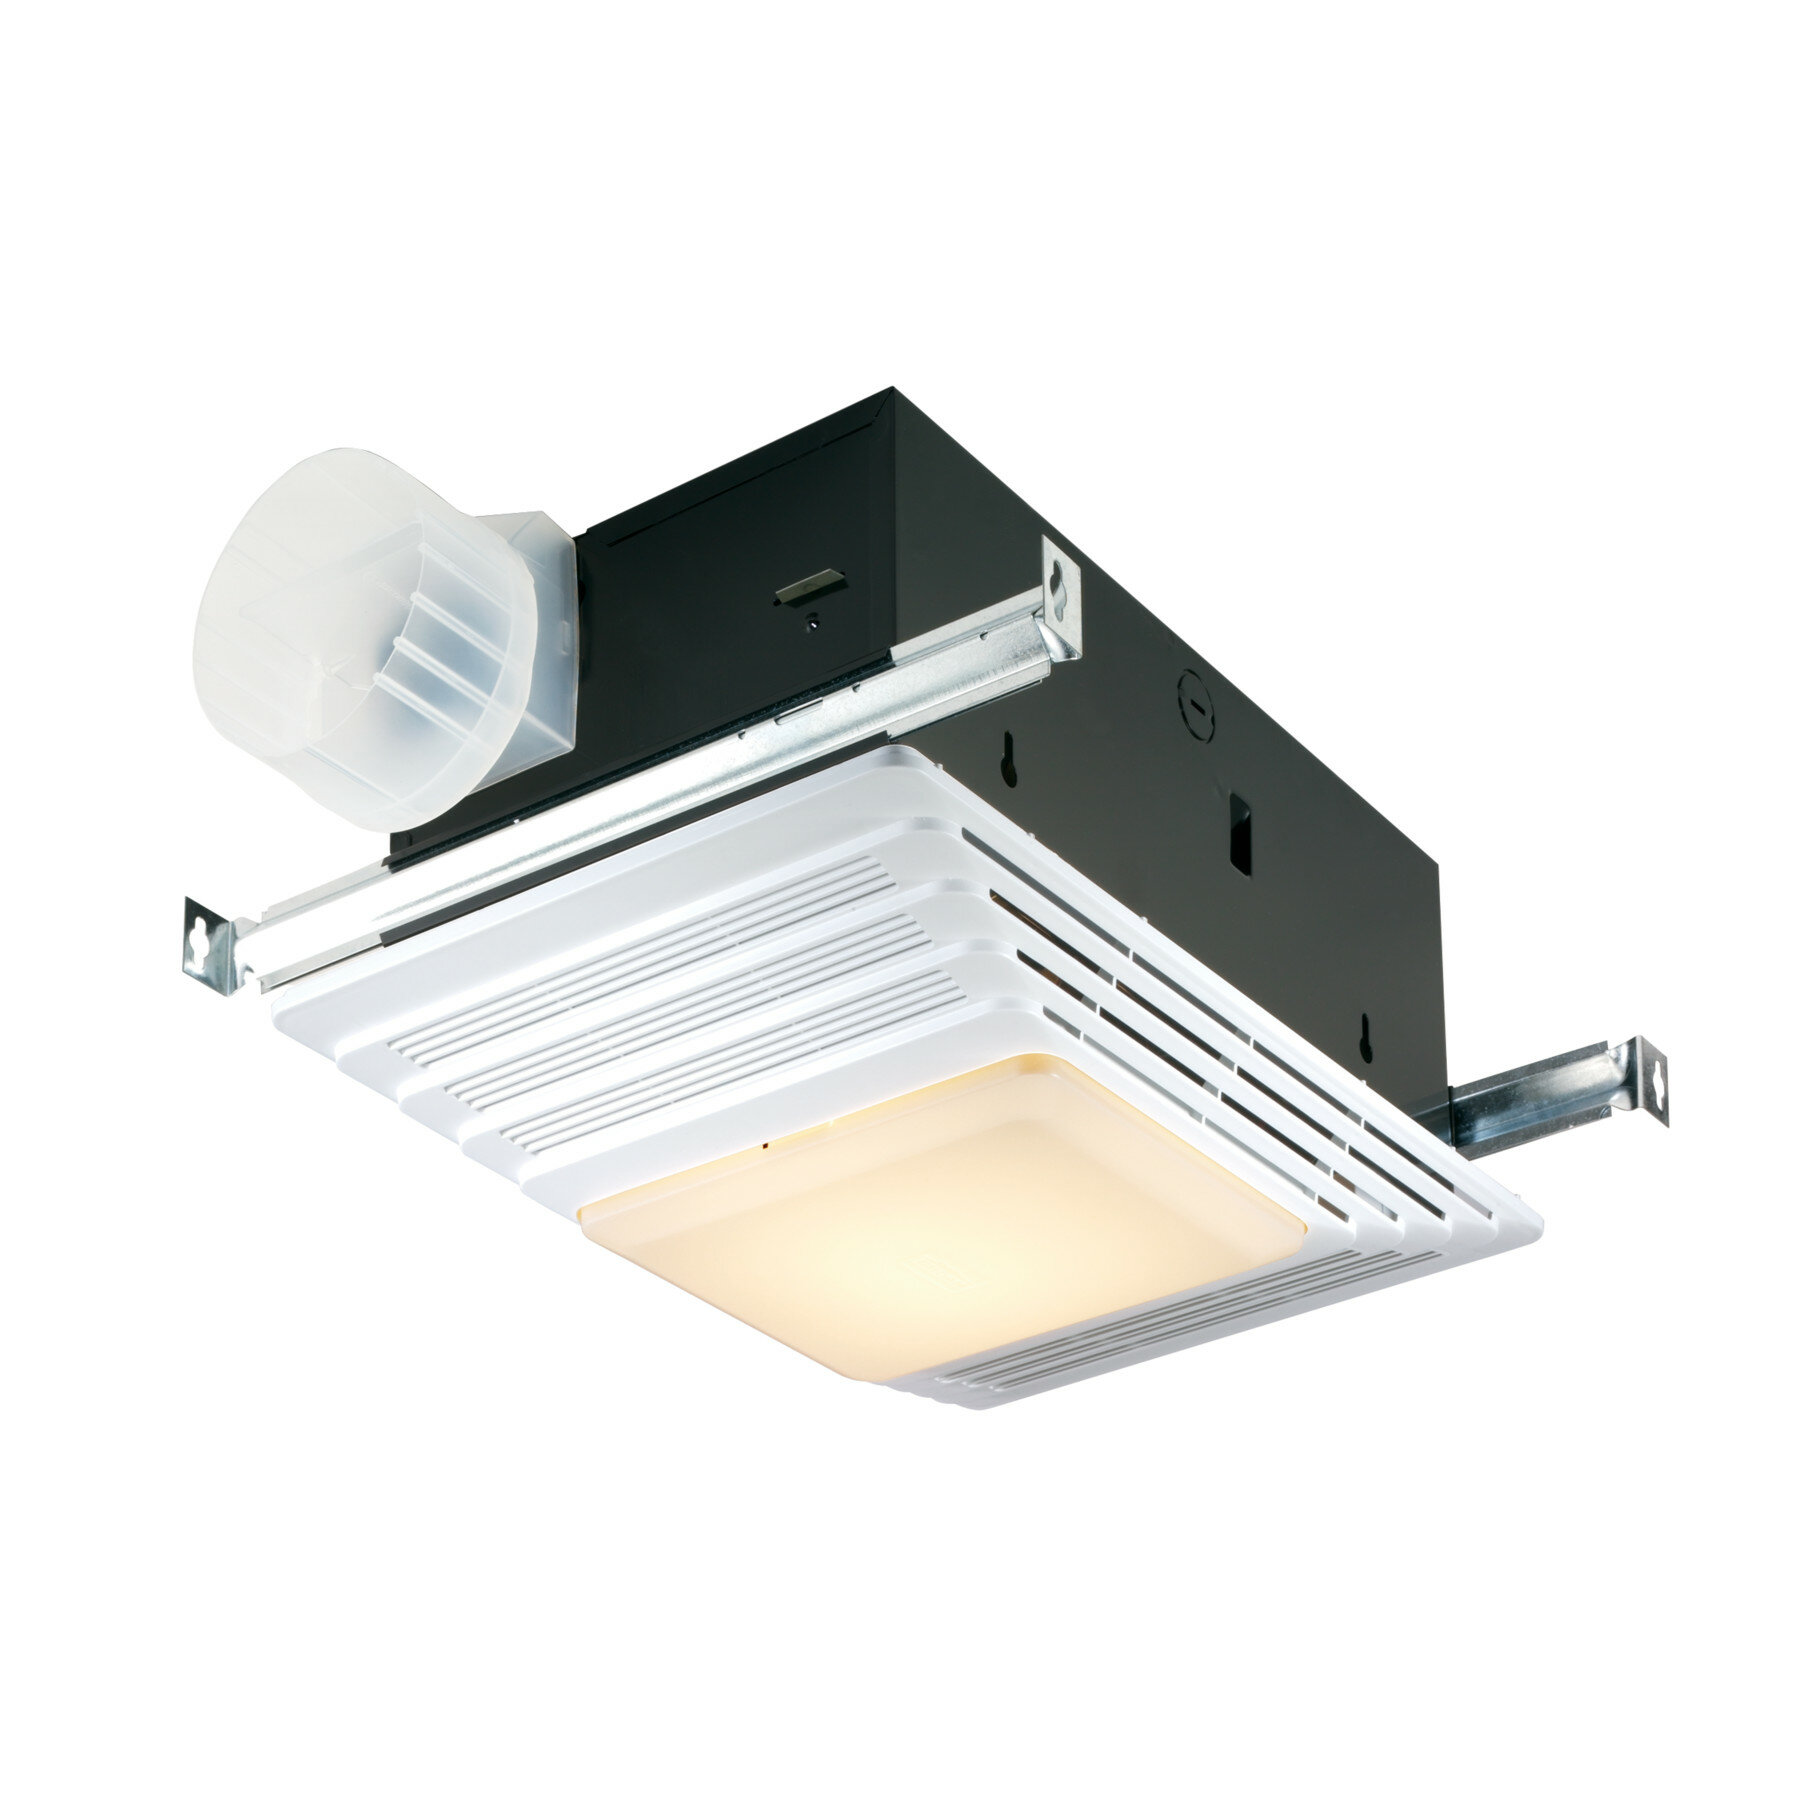 Broan 50 Cfm Bathroom Fan And Heater With Light Reviews Wayfair